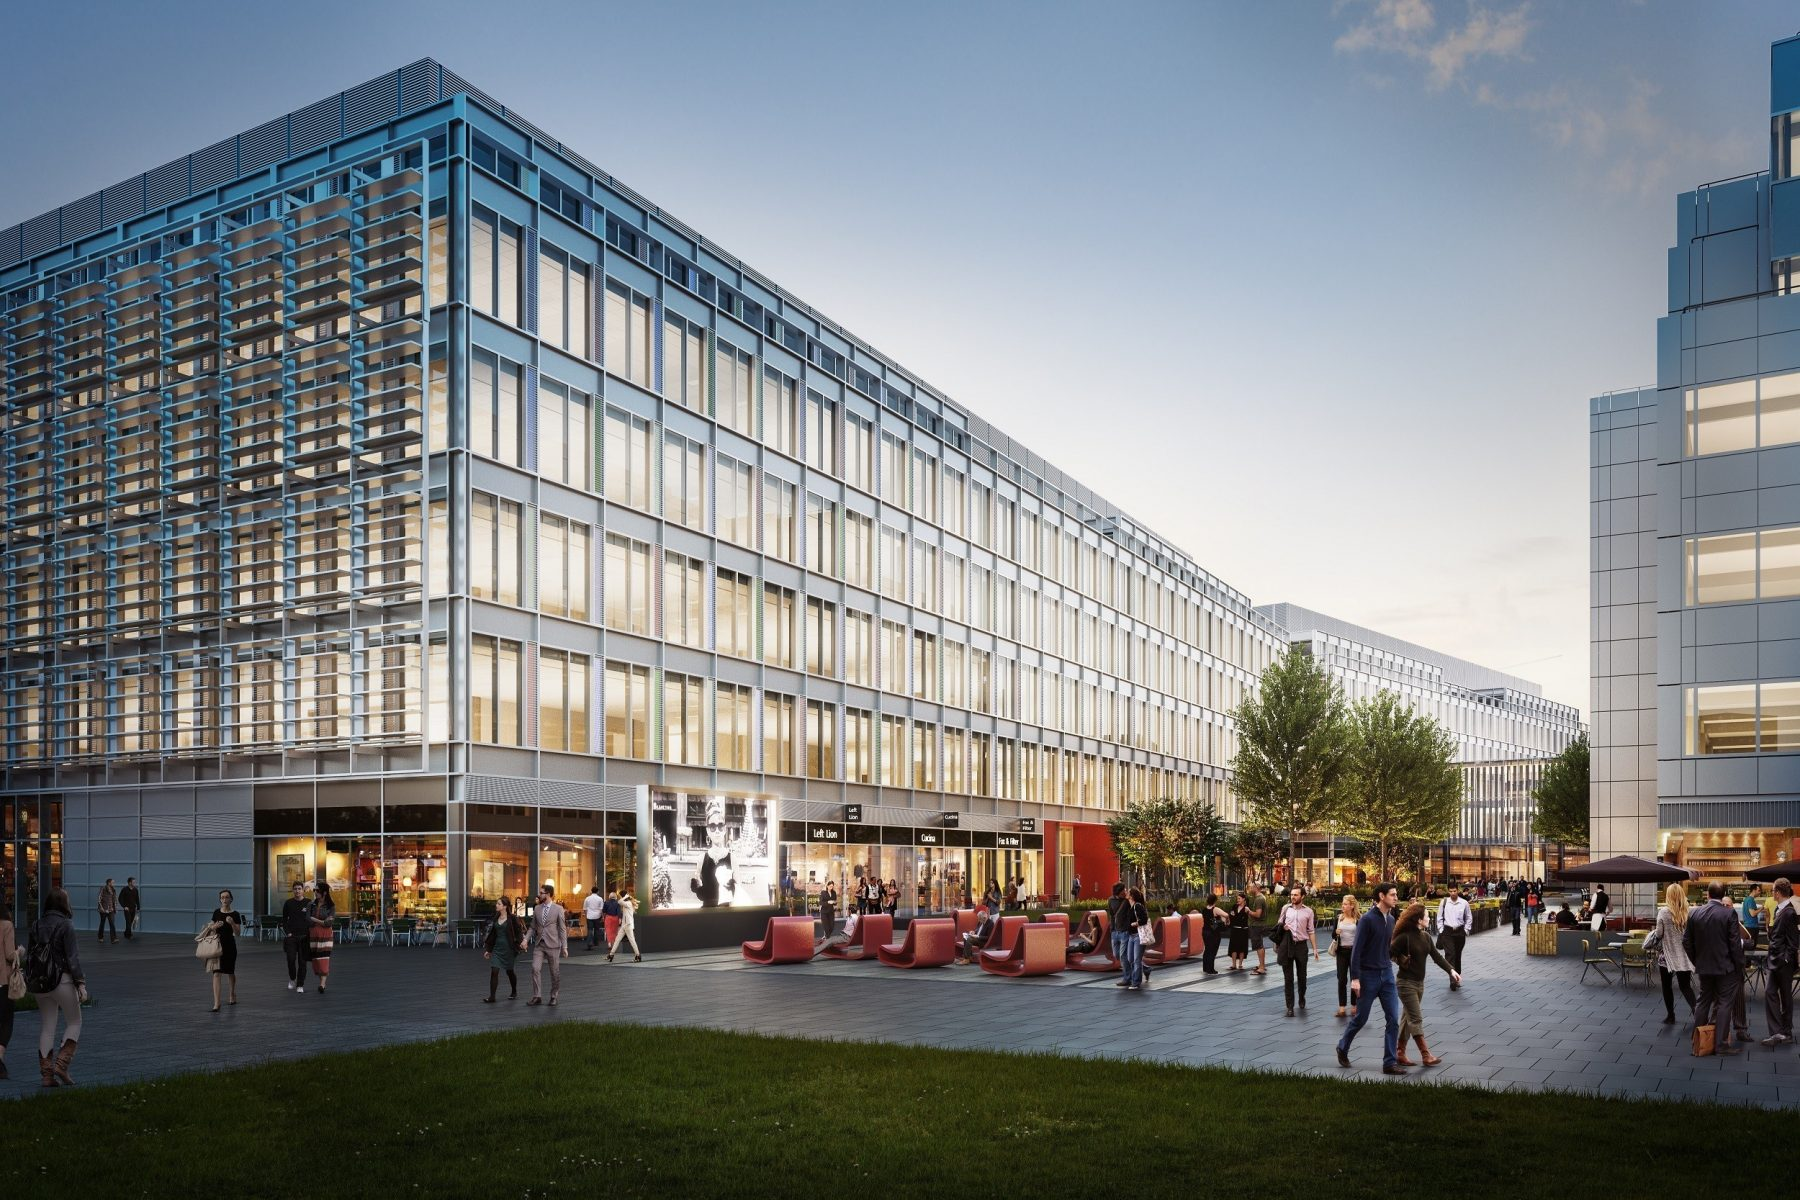 'Not So Sporty Sports Day' coming to White City Place